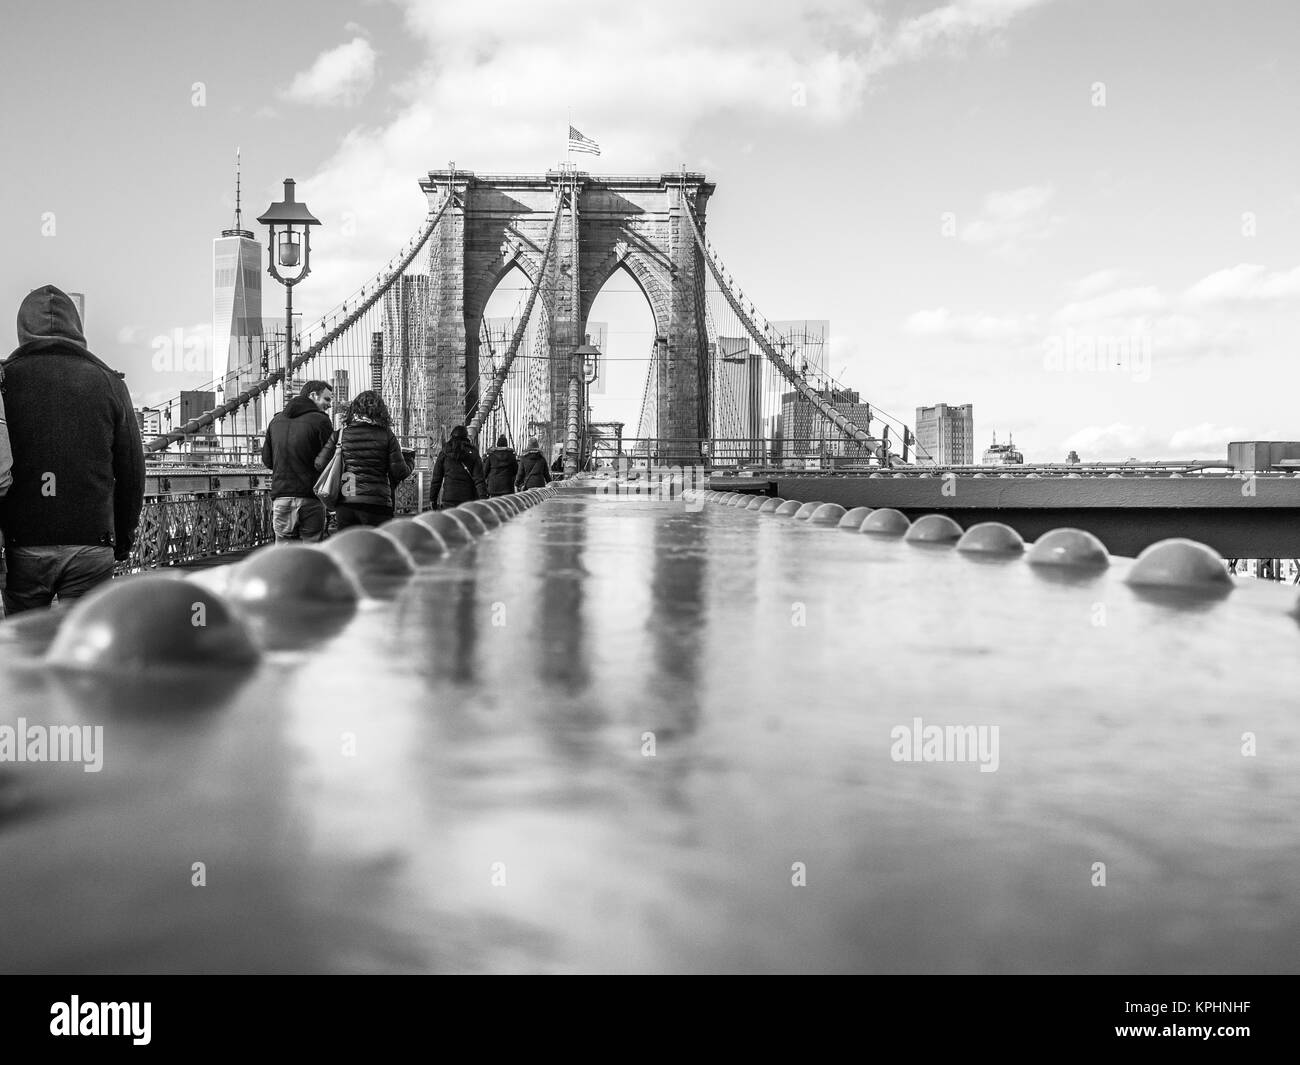 NEW YORK, USA - JANUARY 5, 2015: The Brooklyn Bridge receives thousands of pedrstrians and cyclists cross each day. - Stock Image